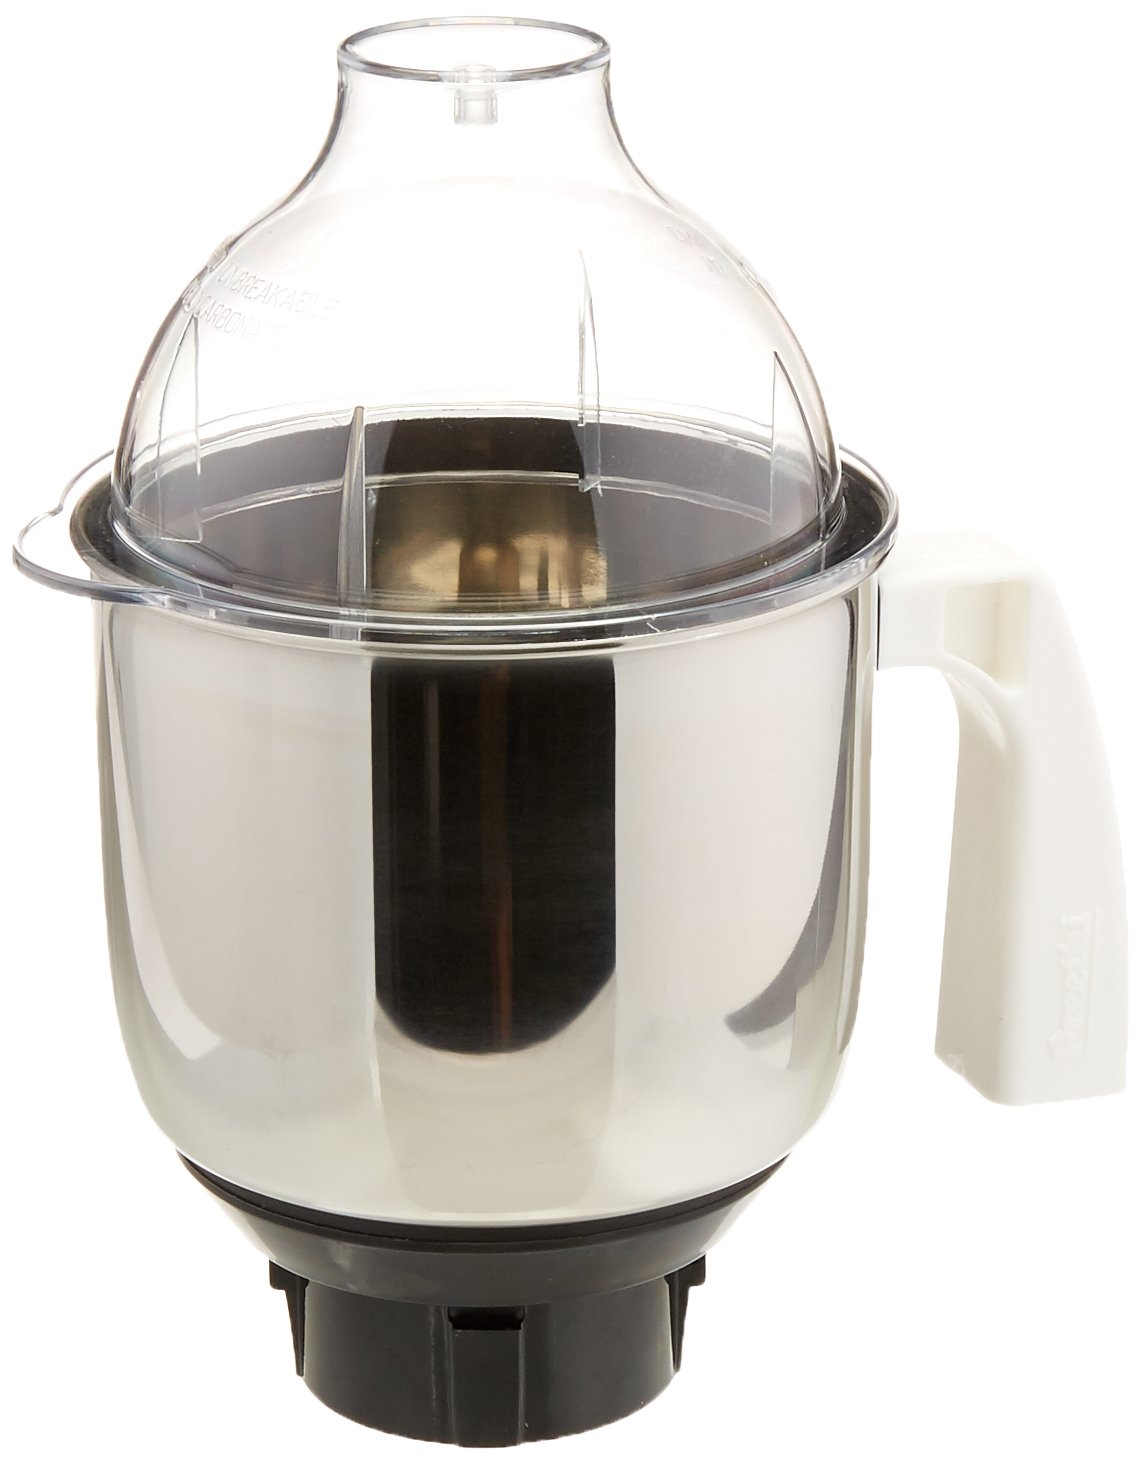 Preethi MGA 513 Mixer Jar for Eco Twin, Eco Plus/Chef Pro and Blue Leaf, 1.50-Liter, Silver by Preethi